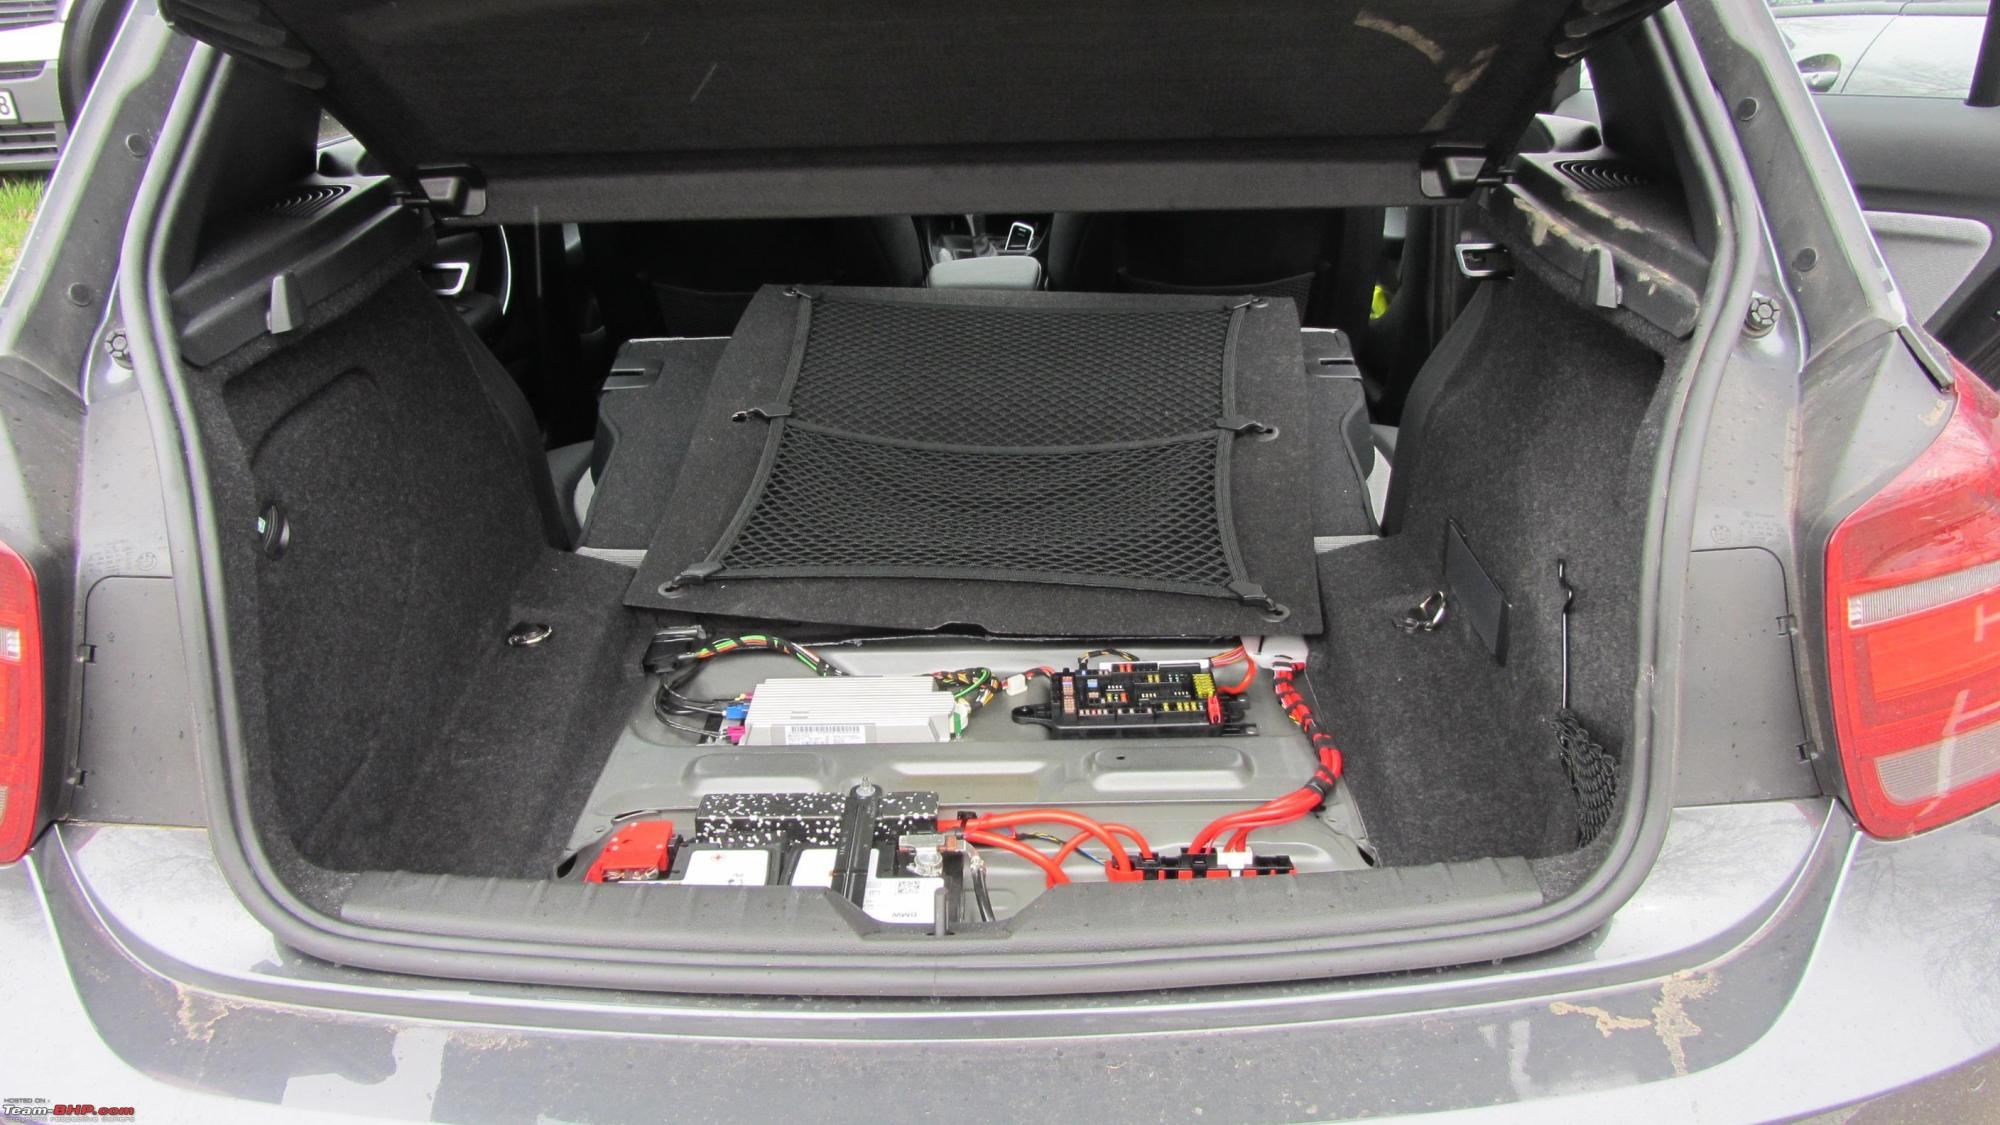 hight resolution of fuse box on bmw 1 series wiring library bmw 530i fuse box bmw 116i fuse box